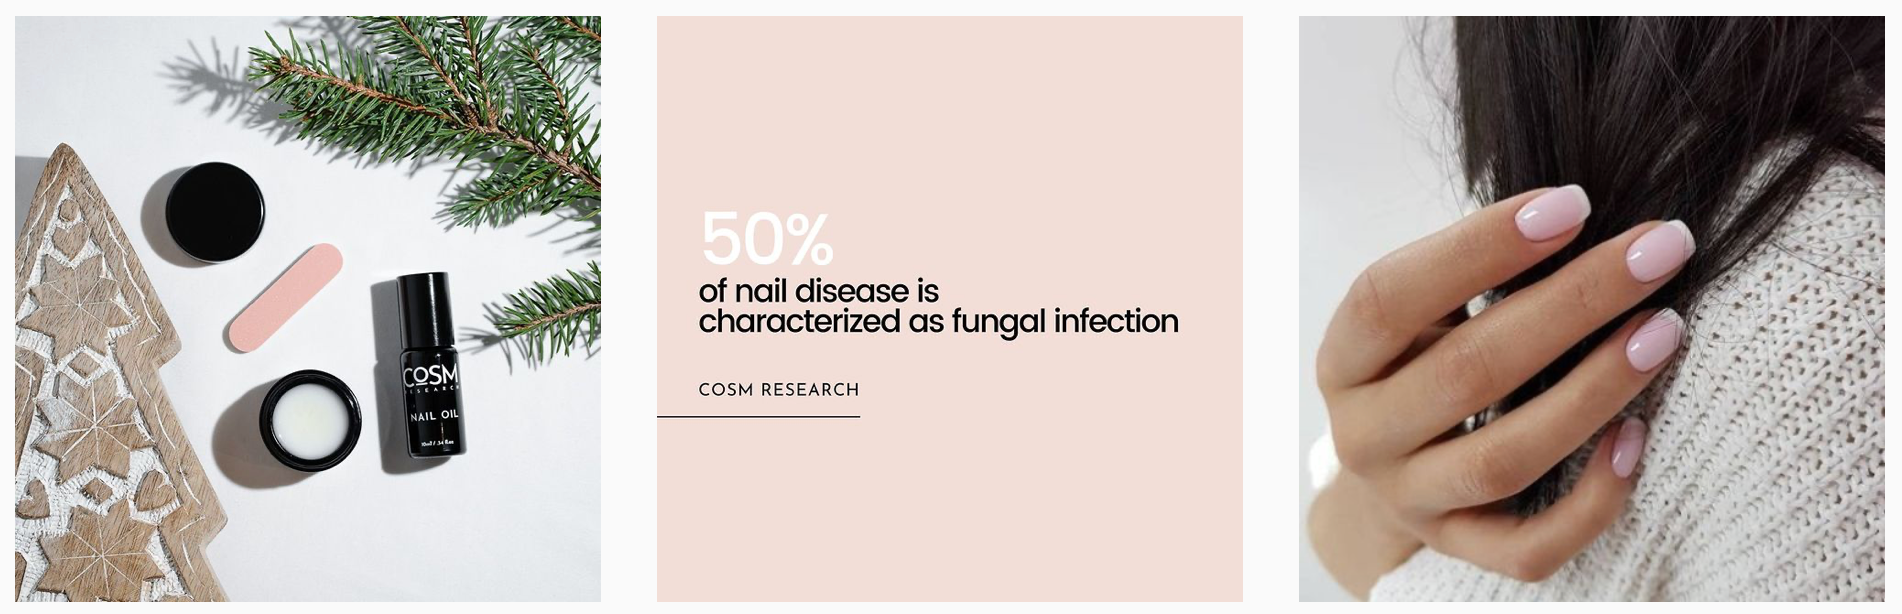 COSM Research nail oil